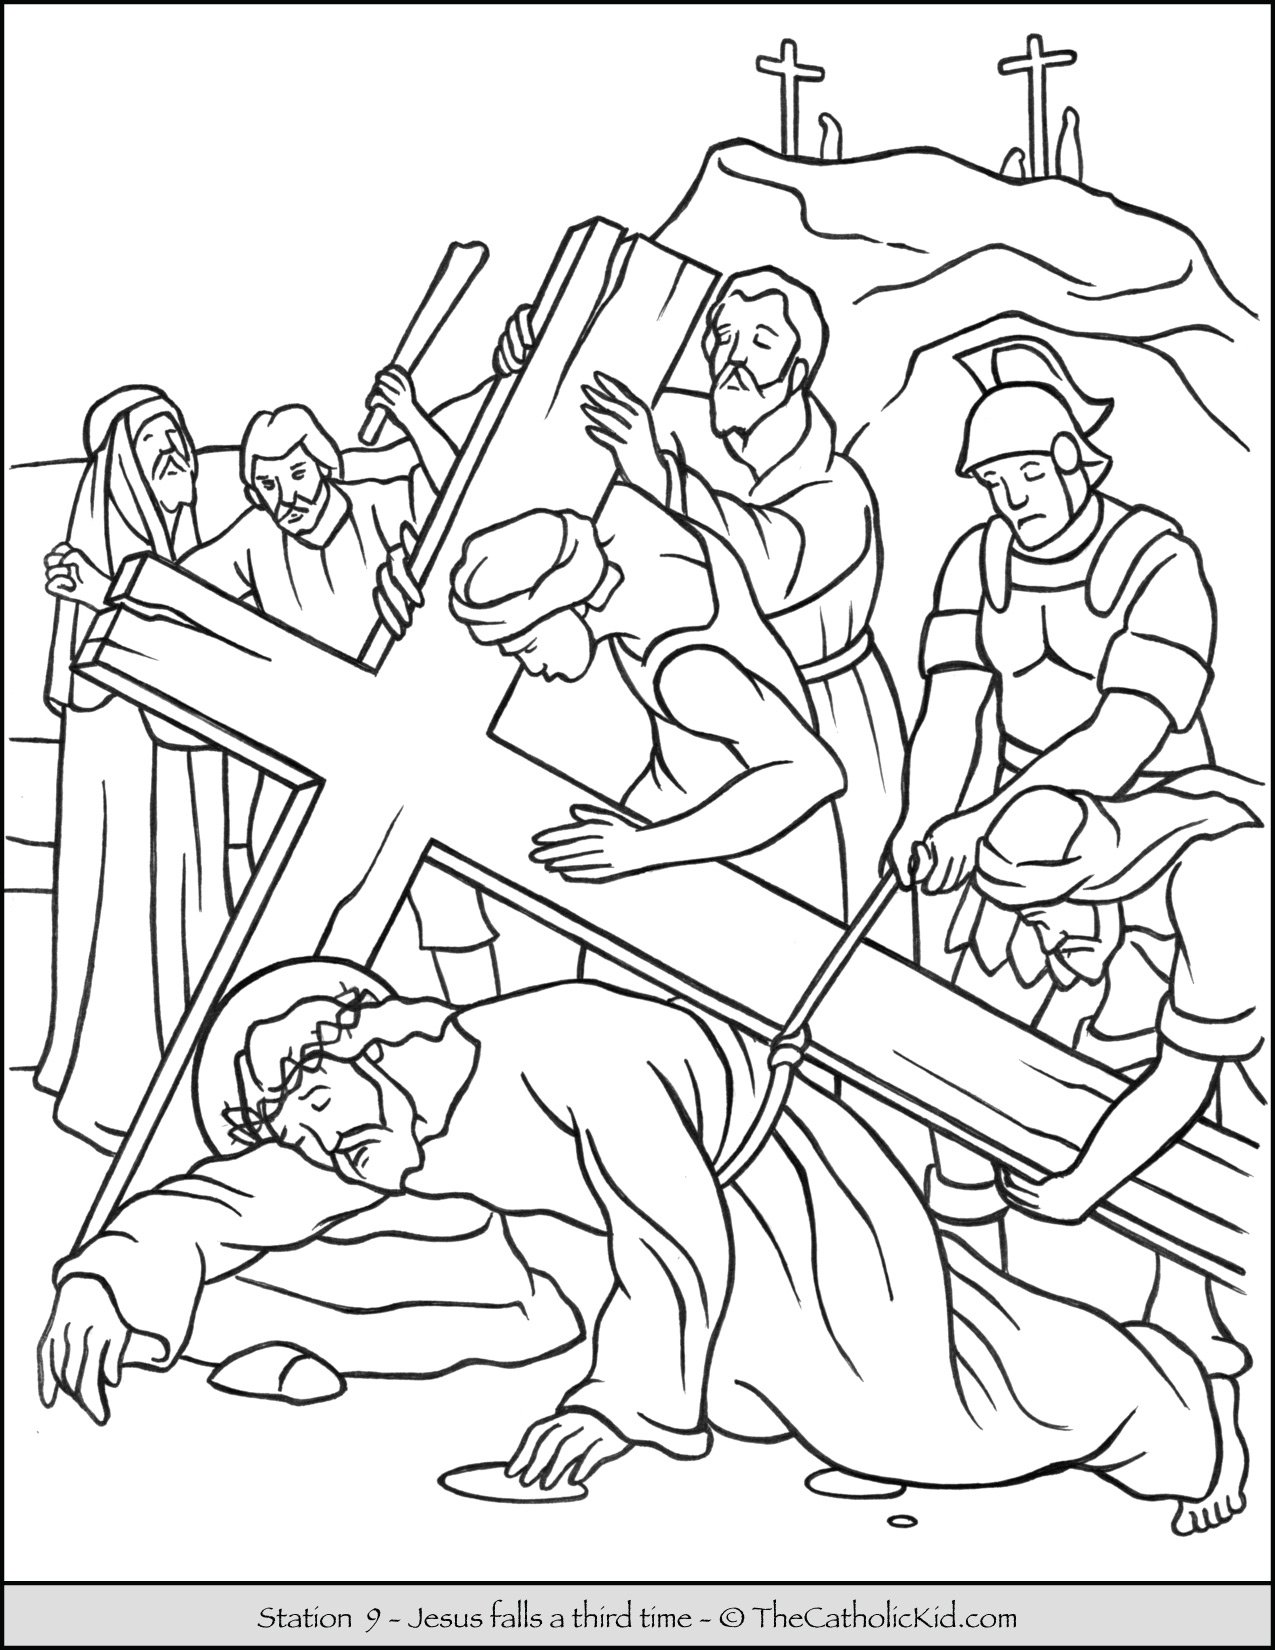 Stations of the Cross Catholic Coloring Pages for Kids 9